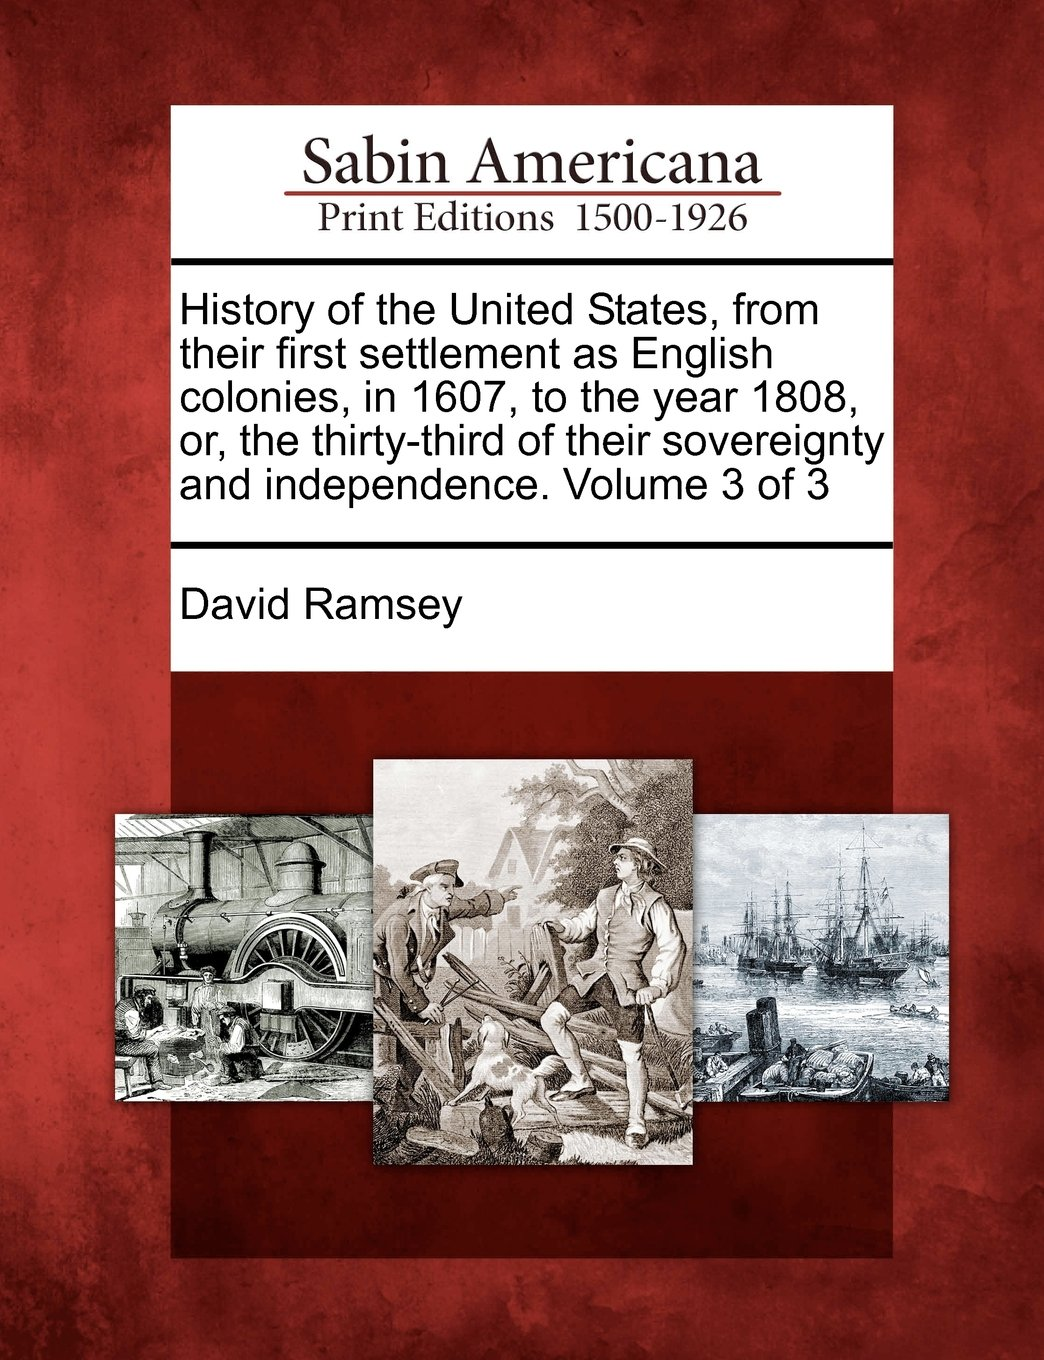 History of the United States, from their first settlement as English colonies, in 1607, to the year 1808, or, the thirty-third of their sovereignty and independence. Volume 3 of 3 ebook